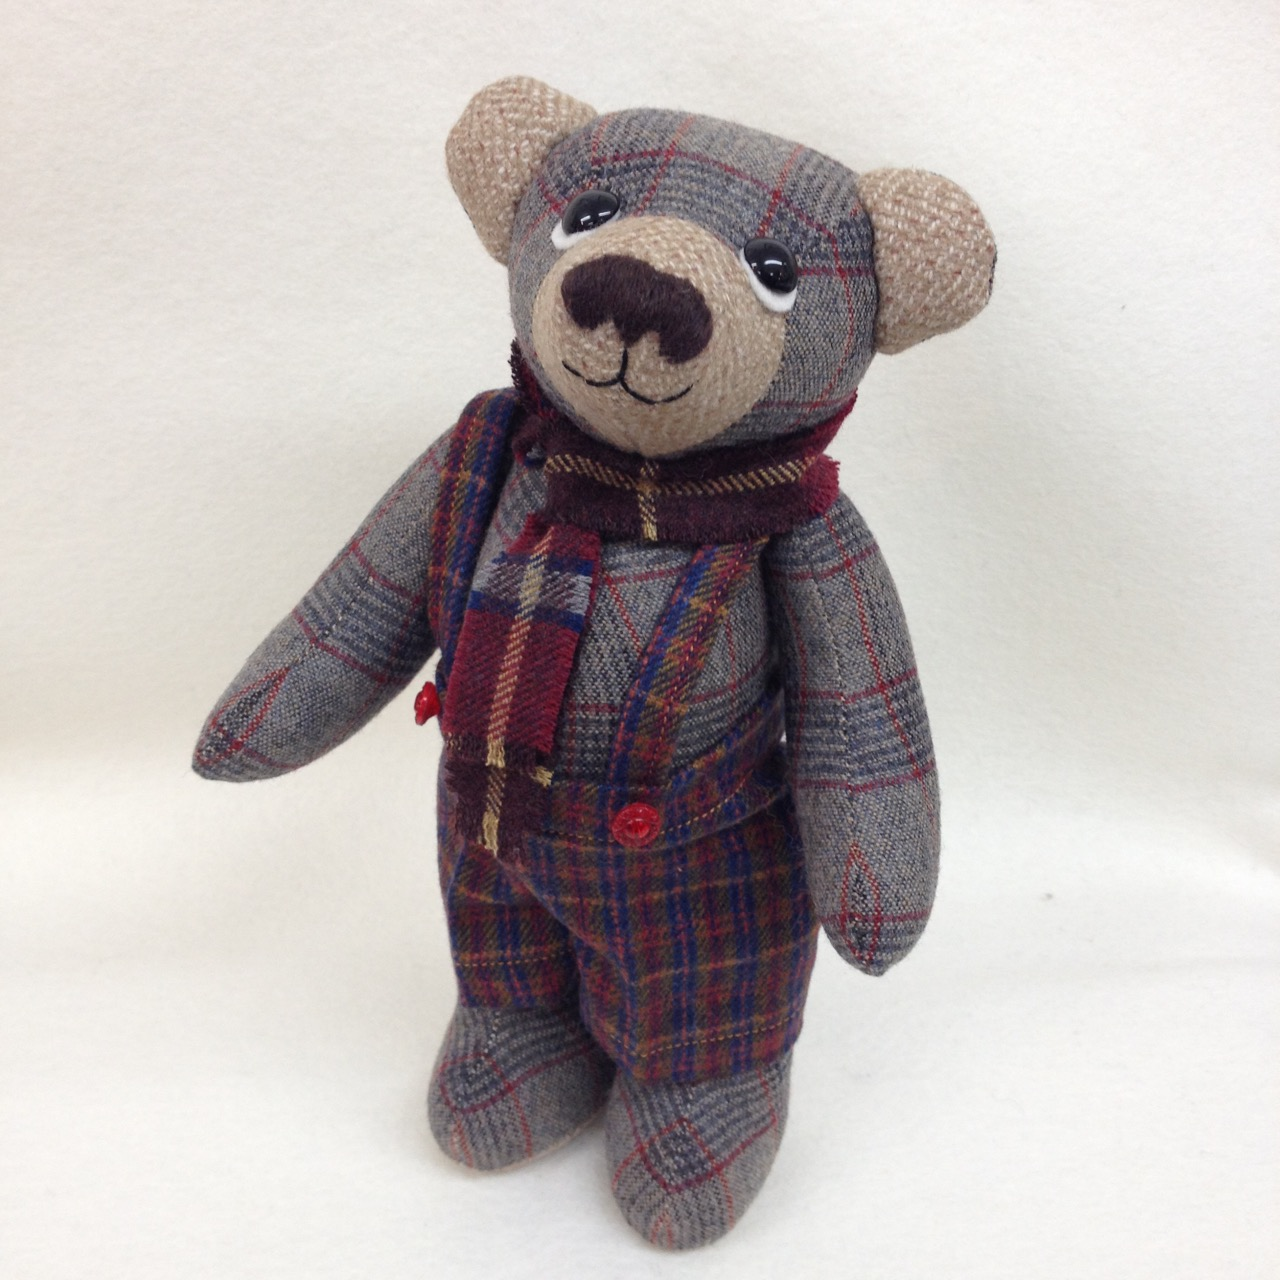 OOAK artist teddy bear George.